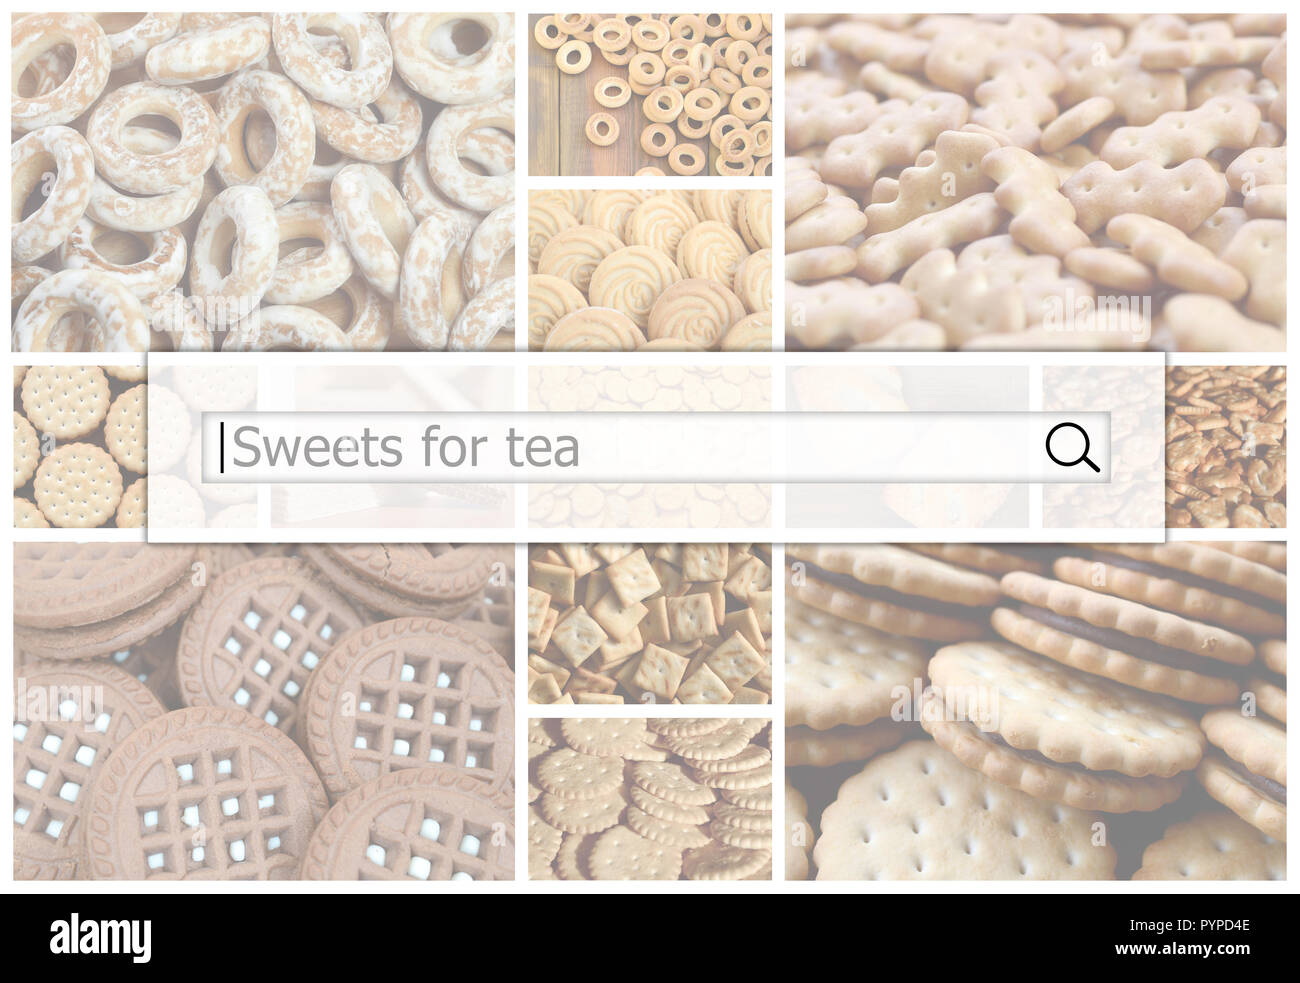 Visualization of the search bar on the background of a collage of many pictures with various sweets close up. Sweets for tea - Stock Image